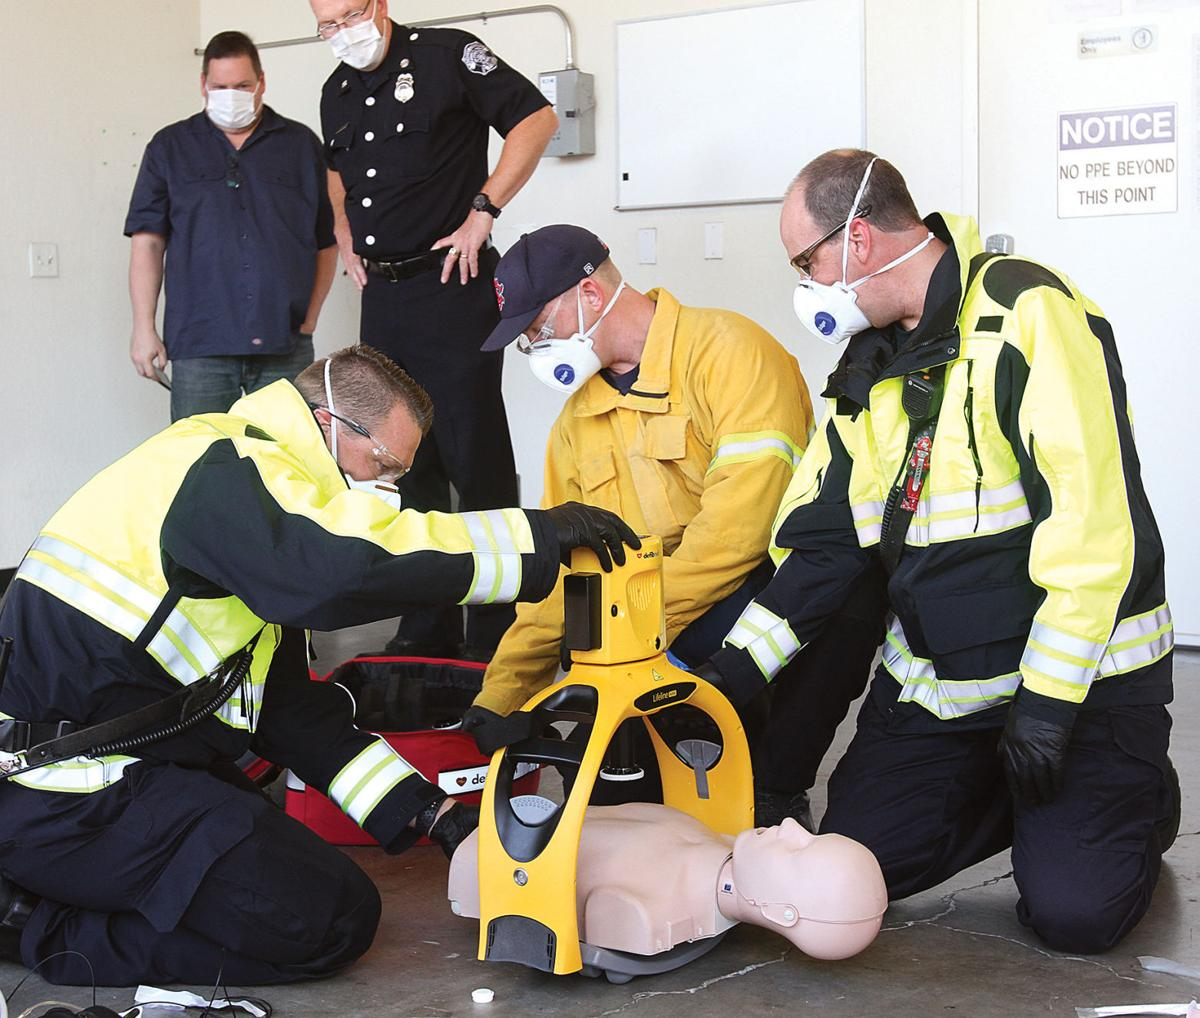 New CPR device added to fire department